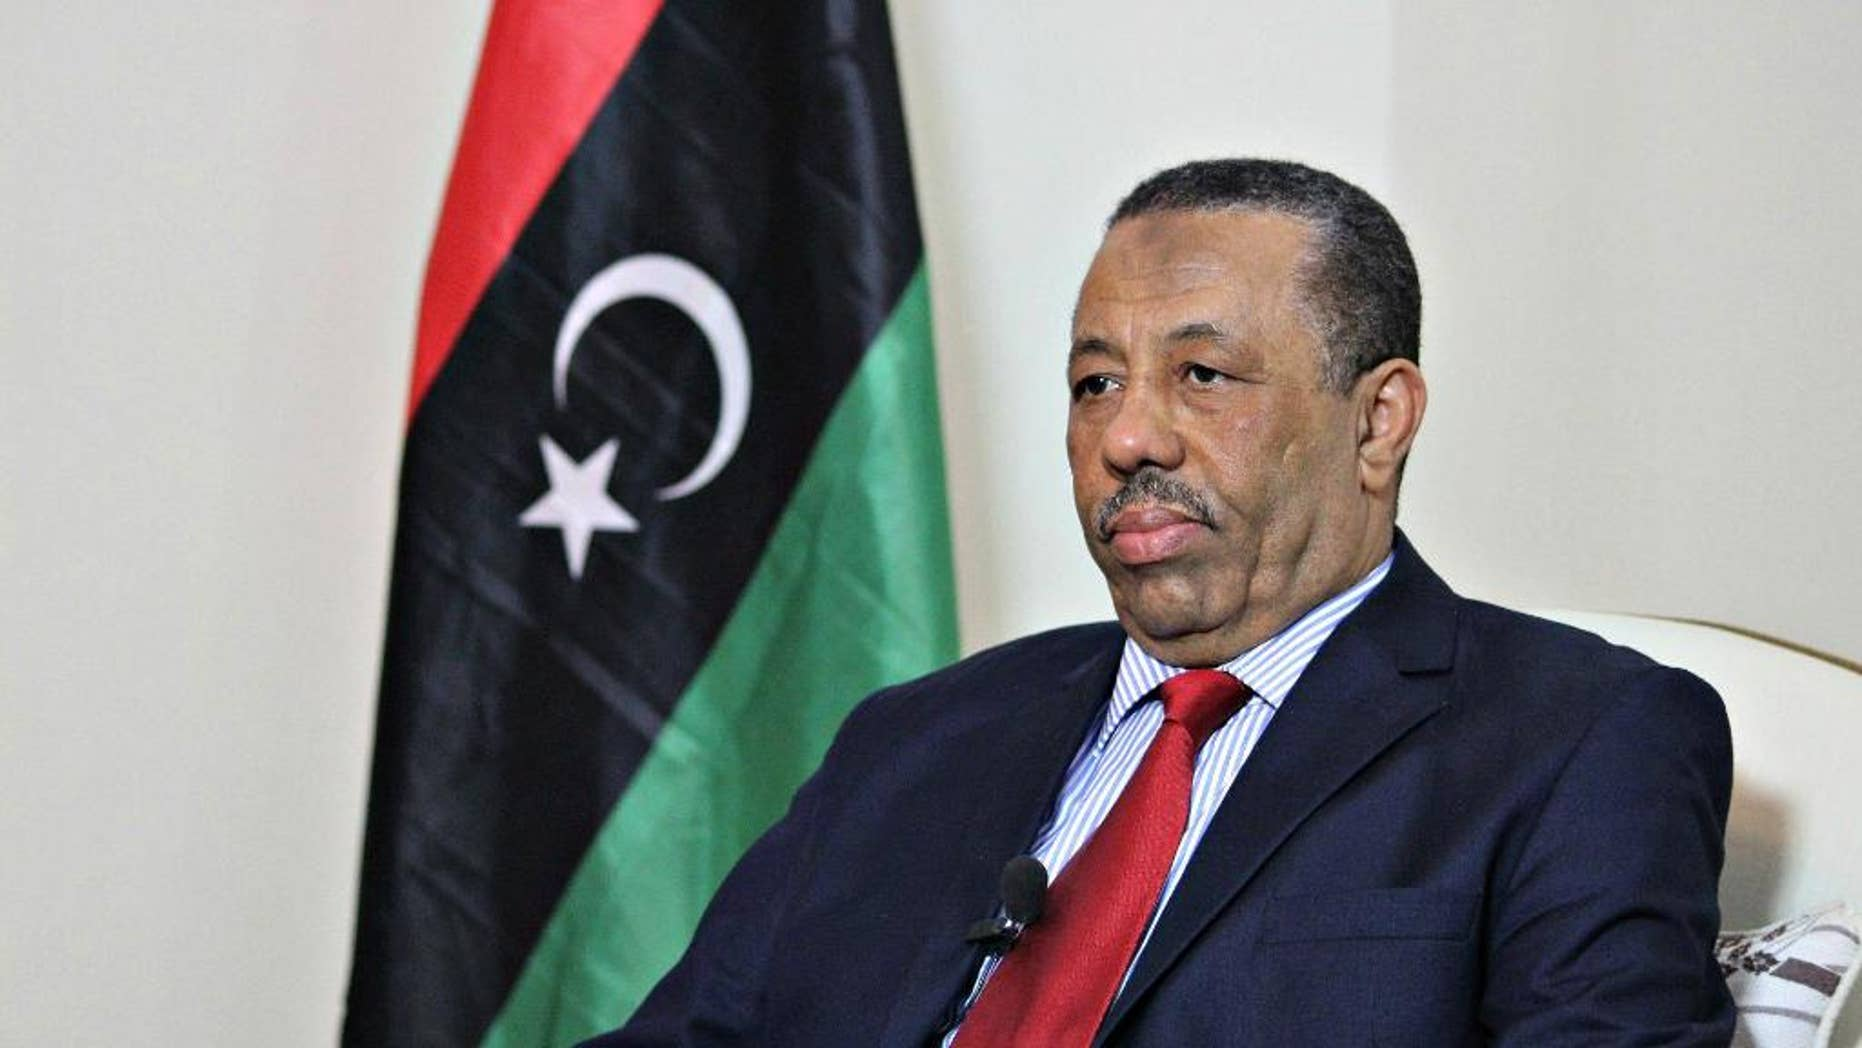 In this Wednesday, Aug. 19, 2015 photo, Prime Minister Abdullah al-Thinni listens to a question during an interview with the Associated Press in Bayda, Libya. Libya's internationally-recognized prime minister said Wednesday wants allied countries to carry out airstrikes against local Islamic State affiliates but does not want foreign ground troops, Arab or otherwise. (AP Photo/Ali Al-Shaary)